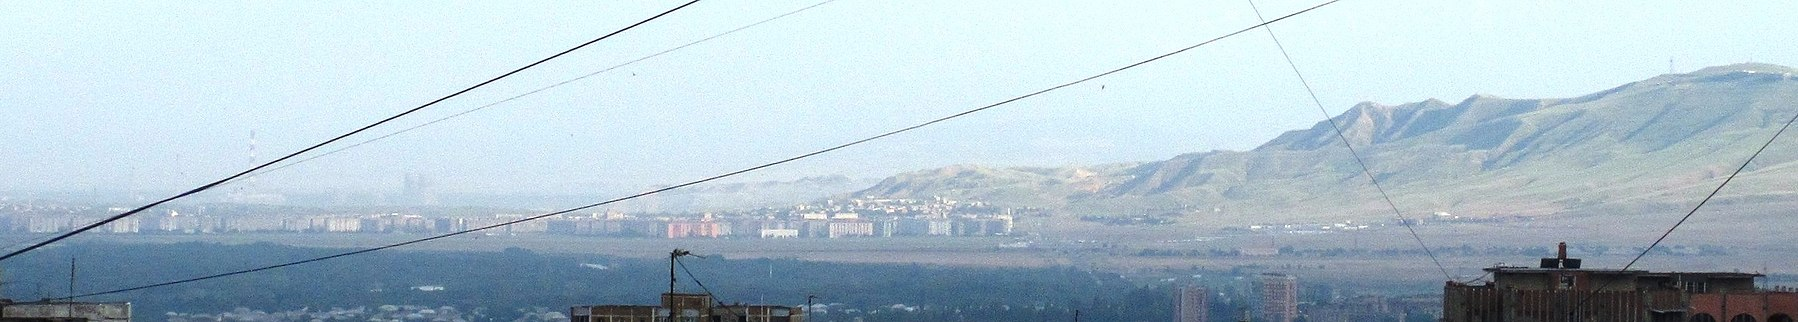 Rustavi (view from SE Tbilisi).jpg